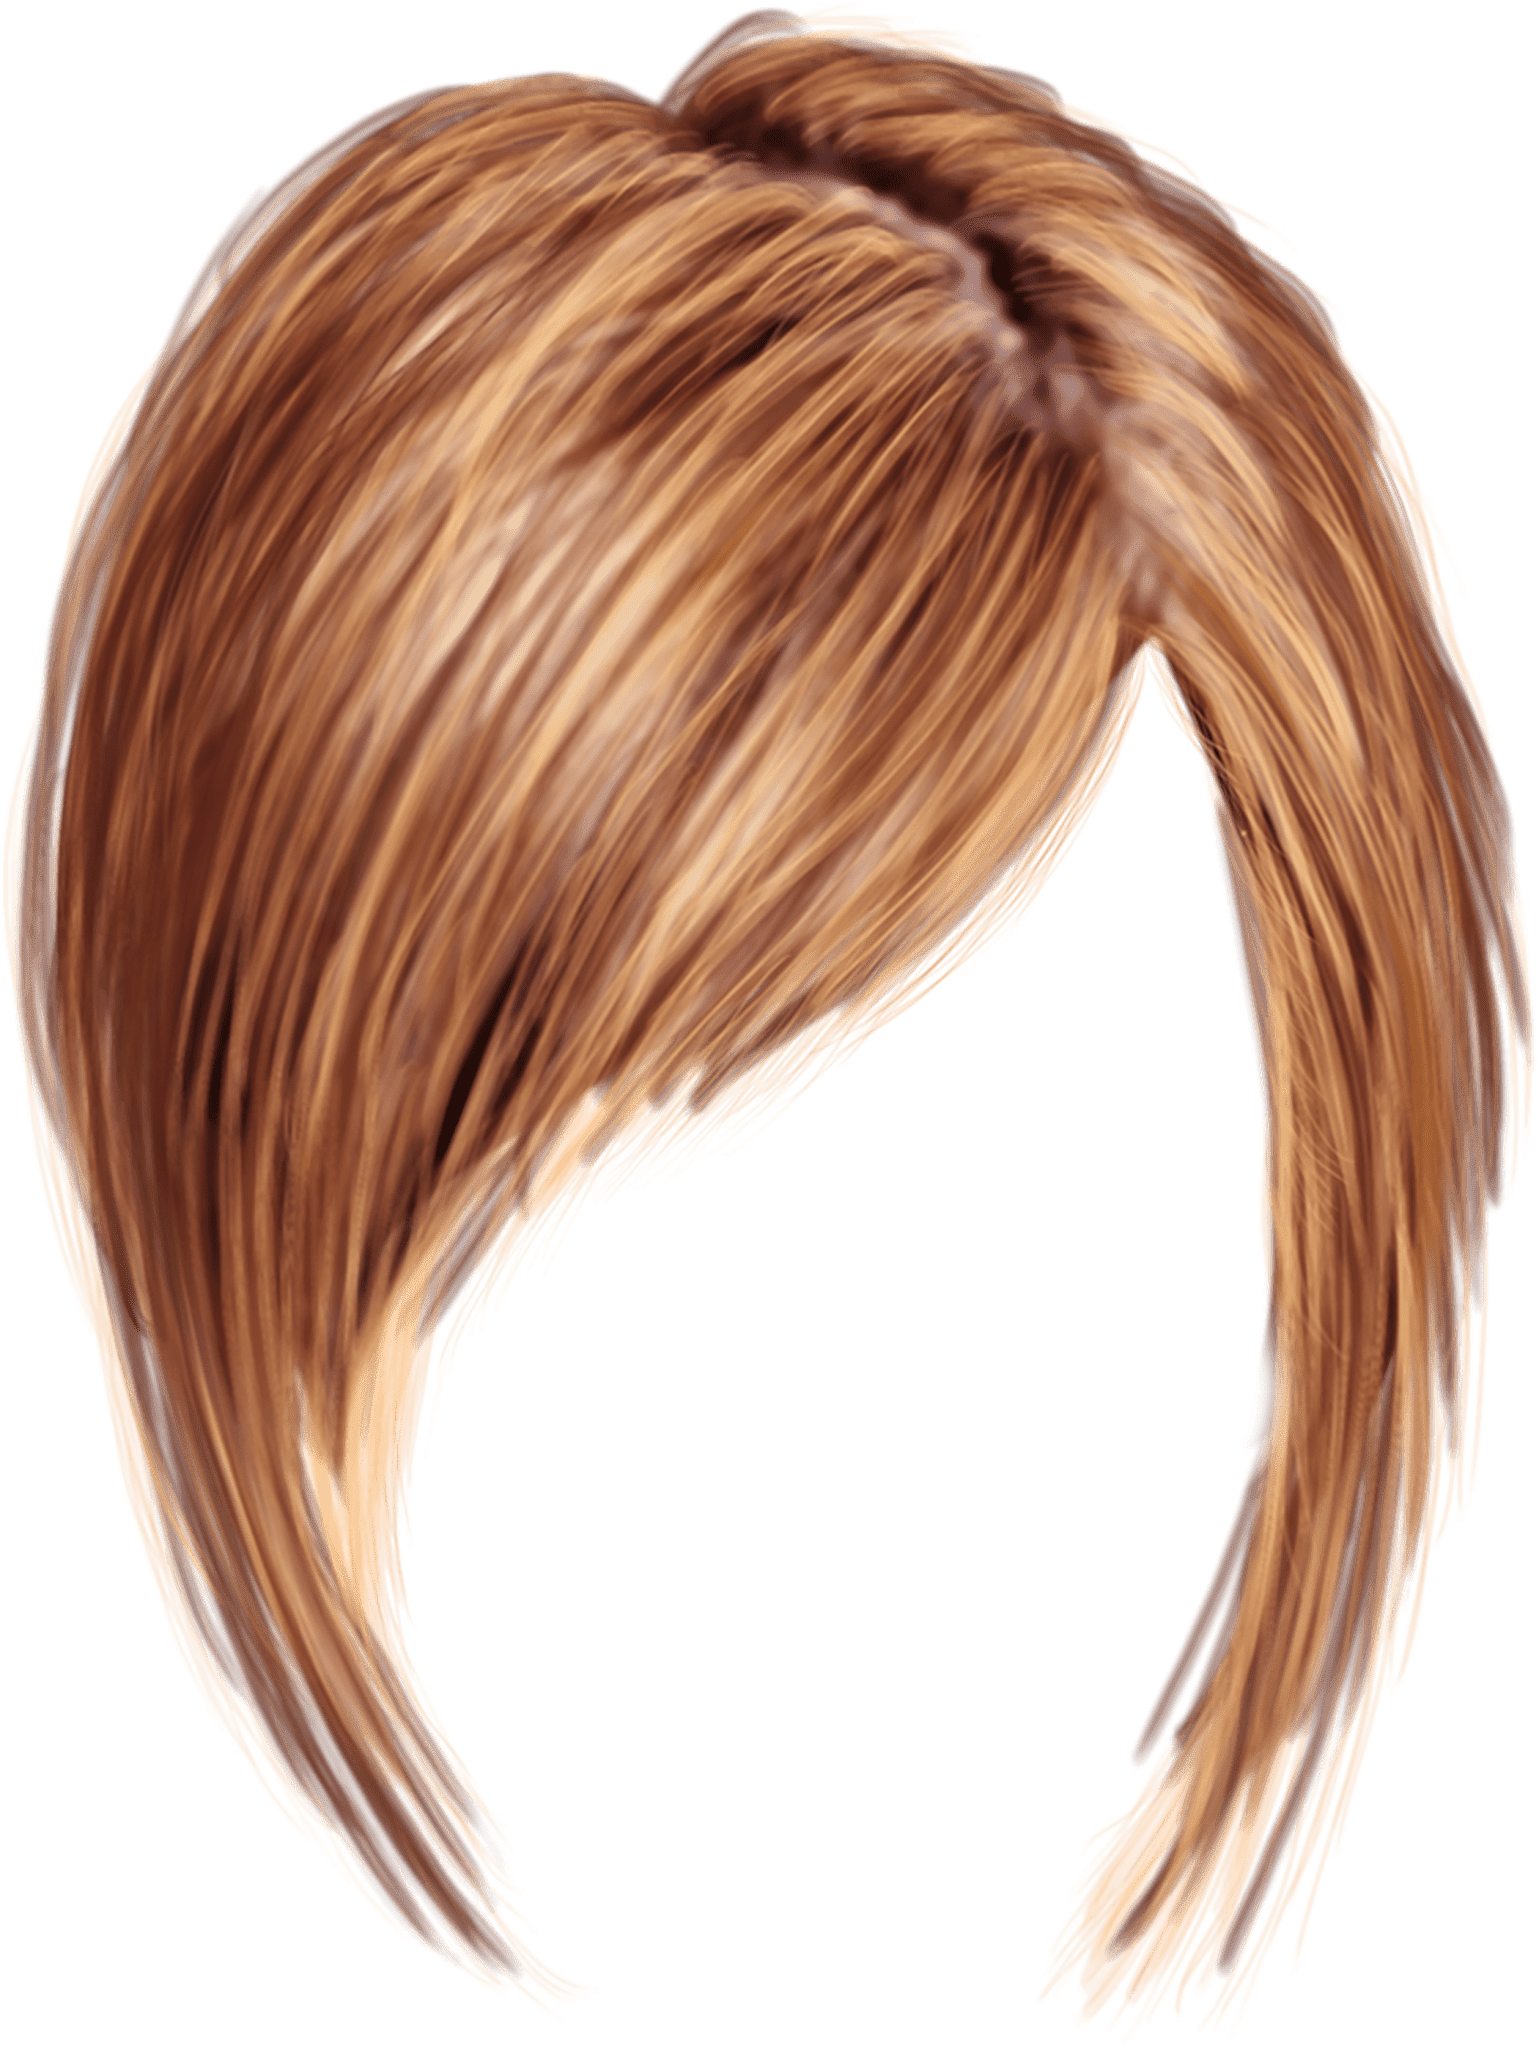 Hairstyle Woman Clip art - hair png download - 1539*2048 - Free Transparent Hair png Download ...